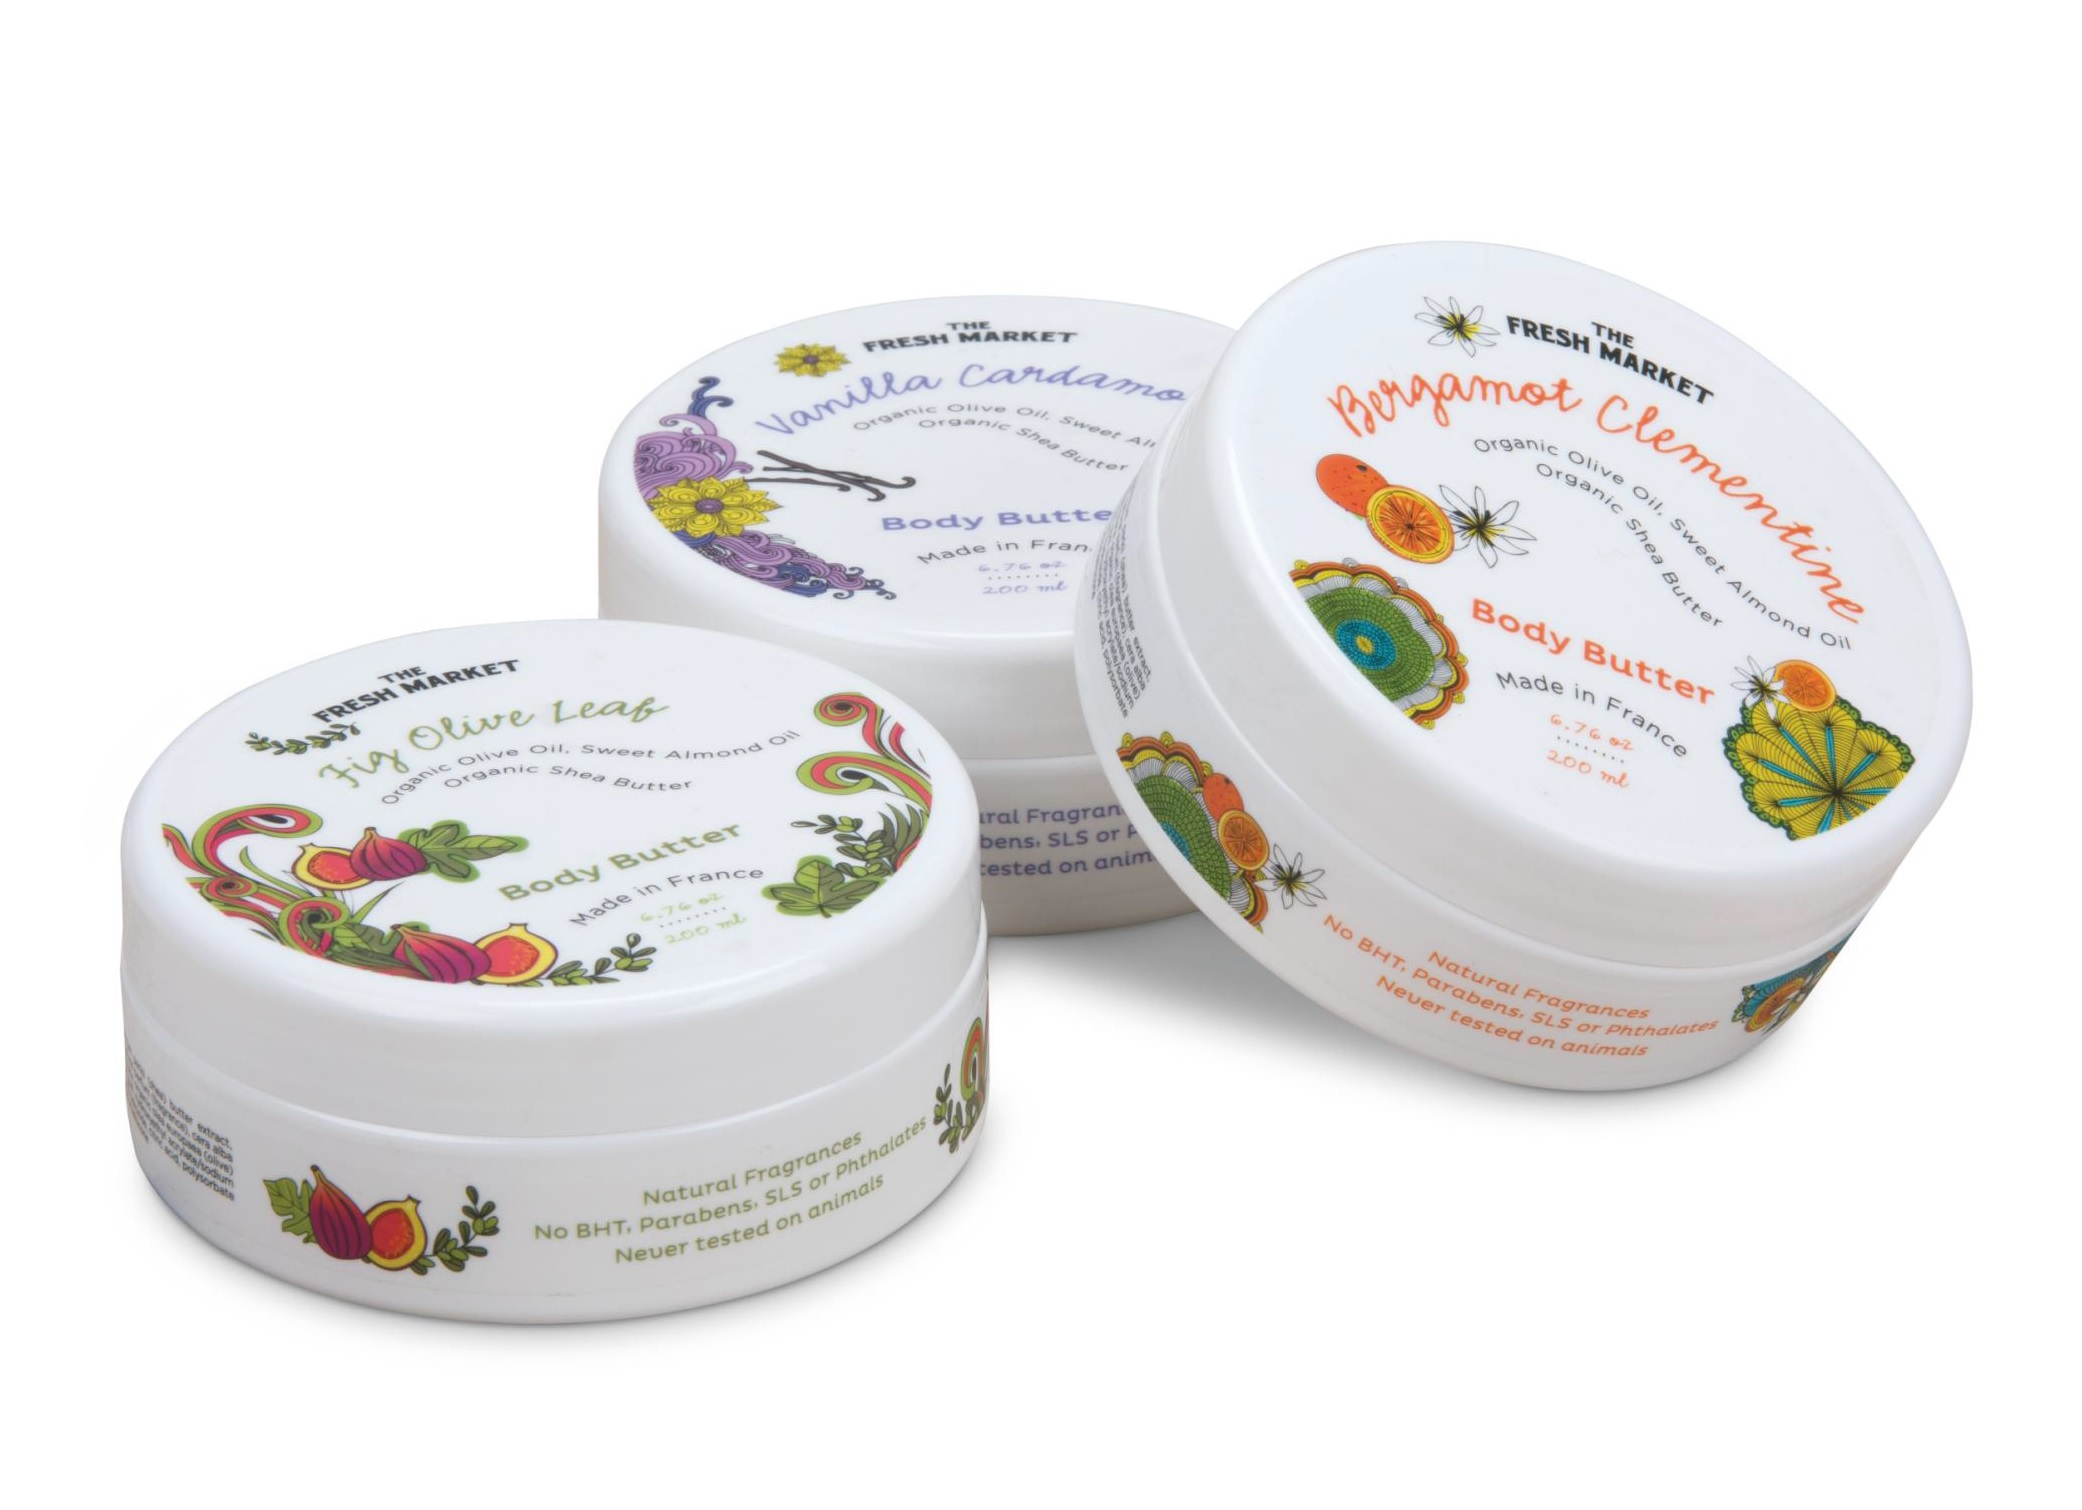 Don't forget to pick up the body butters too!